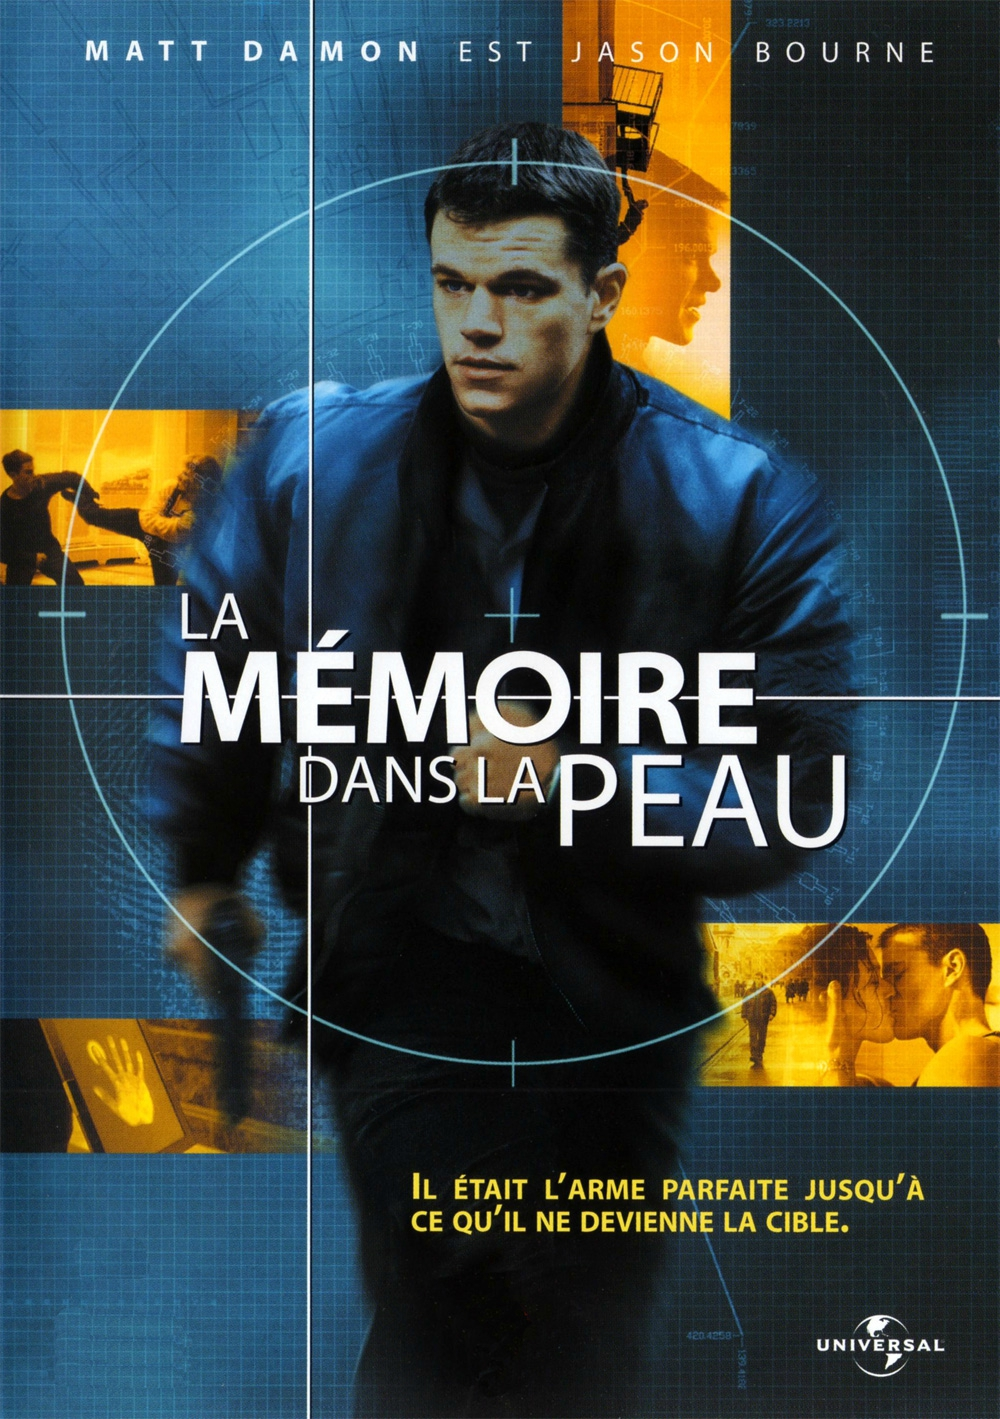 Les films de la saga Jason Bourne, de Doug Liman et Paul Greengrass, 2002,  2004, 2007, 2016